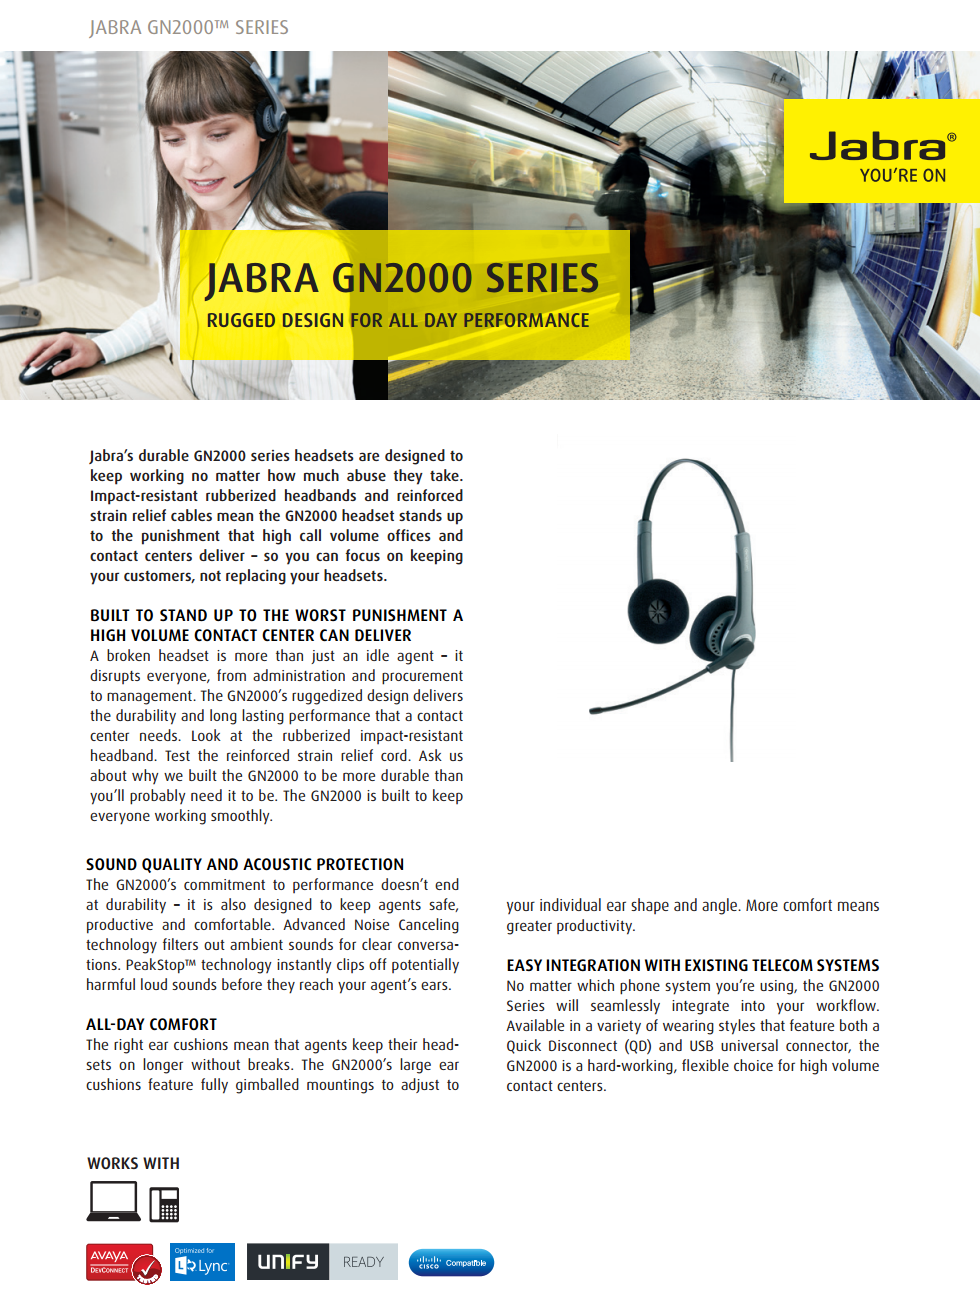 Acheter Micro-casque filaire Jabra GN2000 DUO Noise Canceling Narrow Band (QD) Maroc